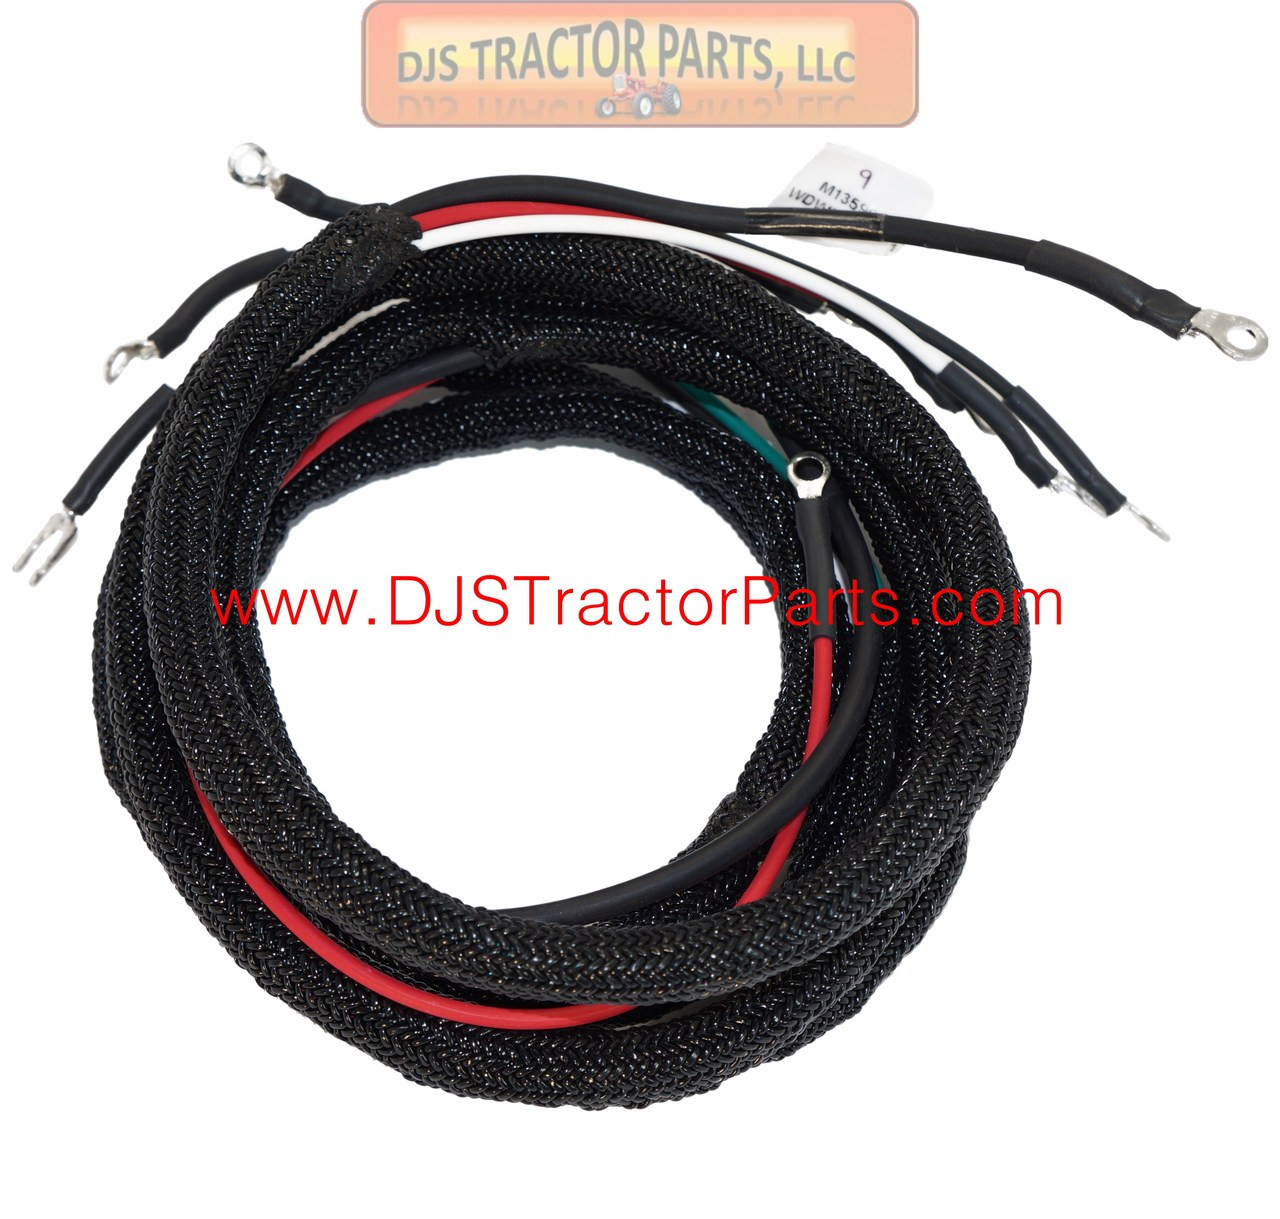 main wiring harness allis chalmers wd wd45 acr4766 djs allis chalmers wd wiring harness [ 1280 x 1219 Pixel ]